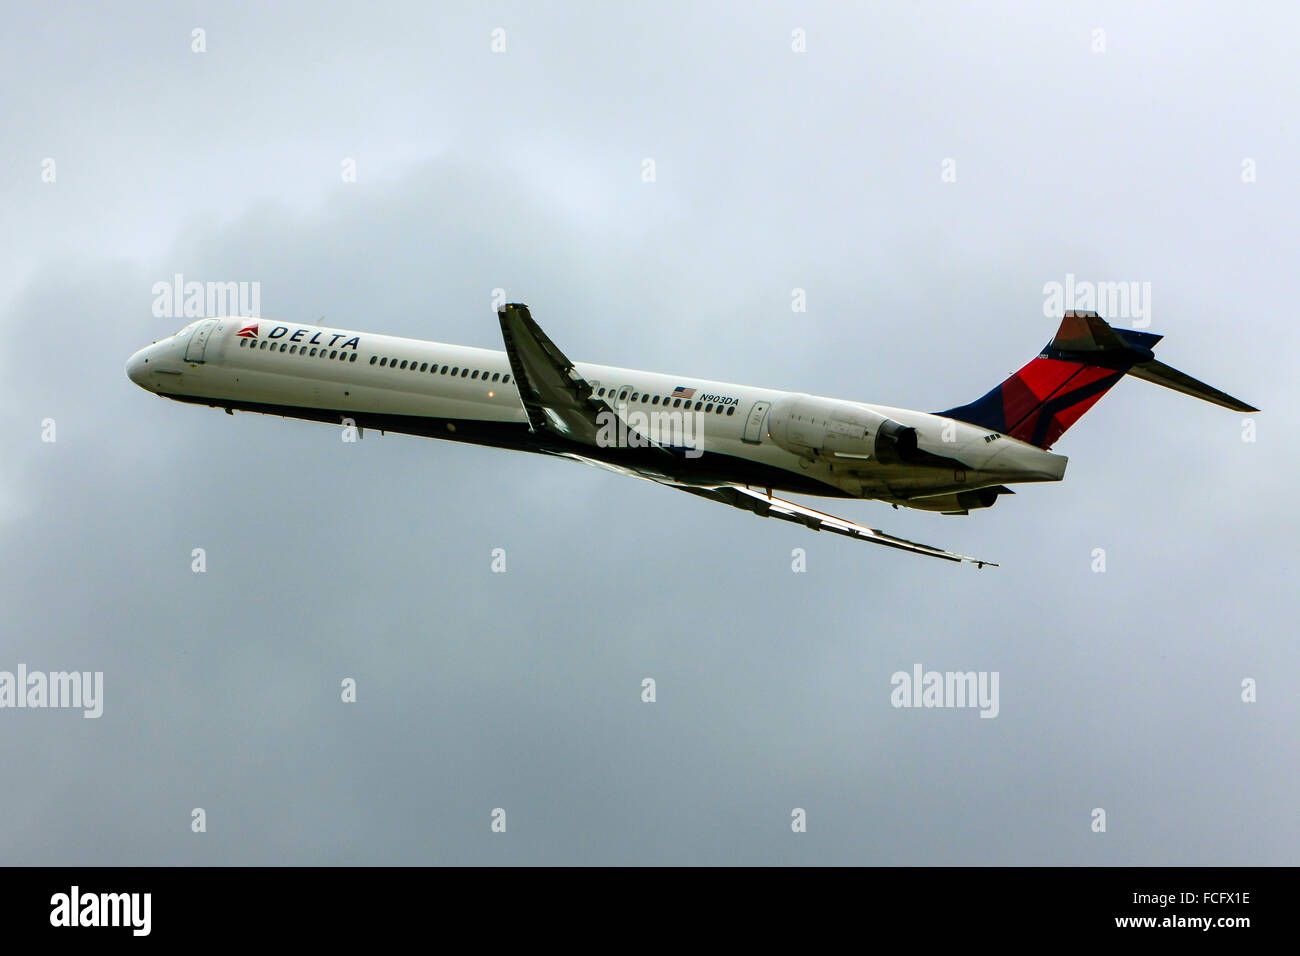 McDonnell Douglas MD-80/90 commercial jet passenger plane of Delta Air Lines leaves Sarasota airport bound for ATL - Stock Image